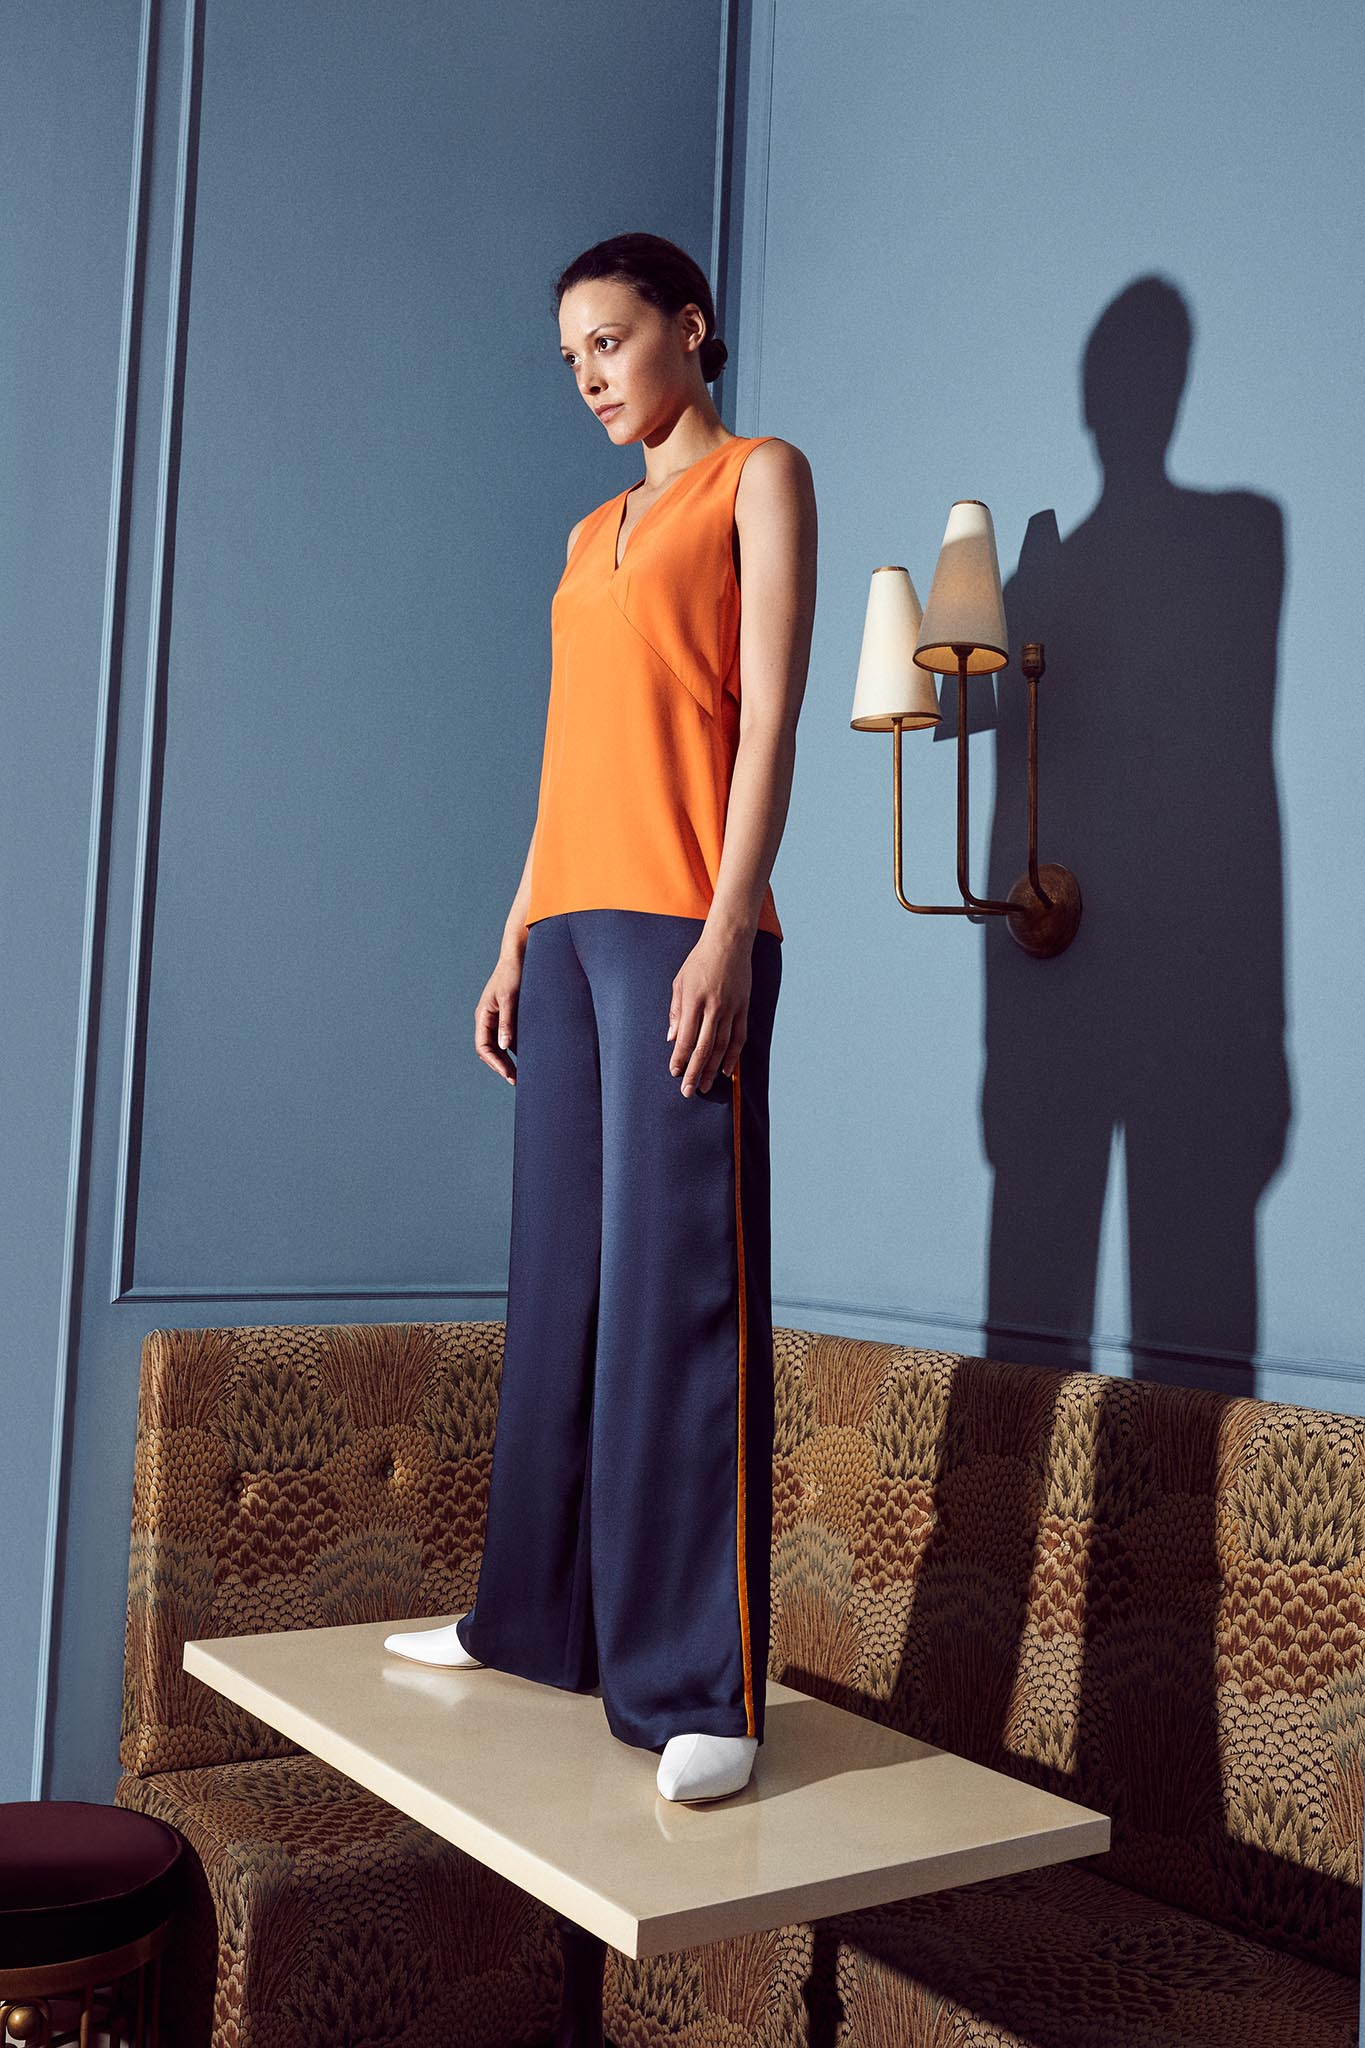 Model wearing orange silk sleeveless top and navy sating wide leg trousers